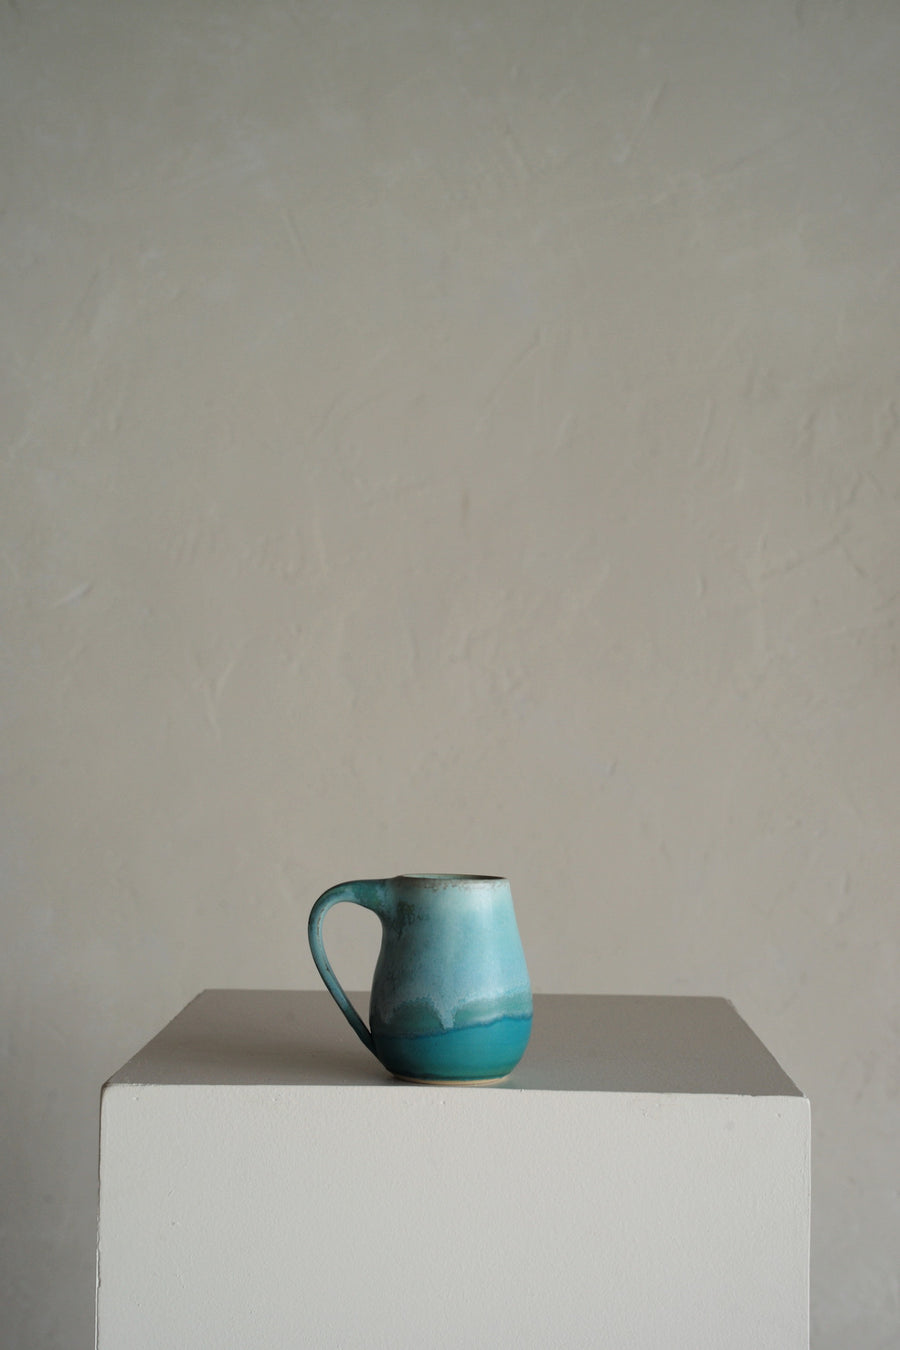 Turquoise, Mugs, Mug, Handmade, Pottery, Ceramics, Home Decor, Local Pottery, Chattanooga